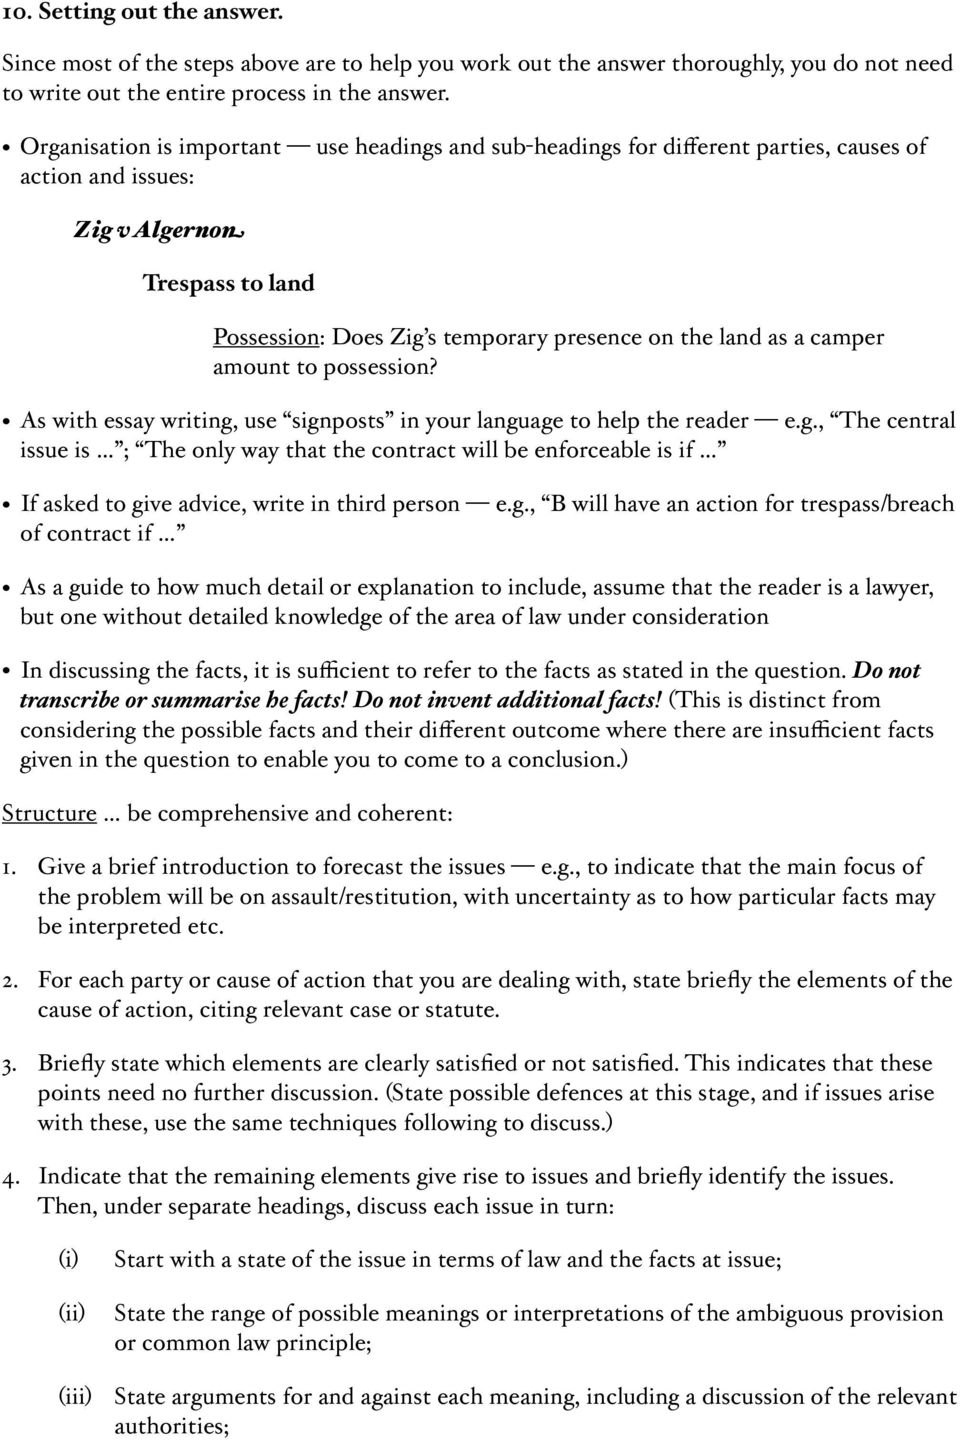 sydney university faculty of law pdf as essay writing use signposts in your language to